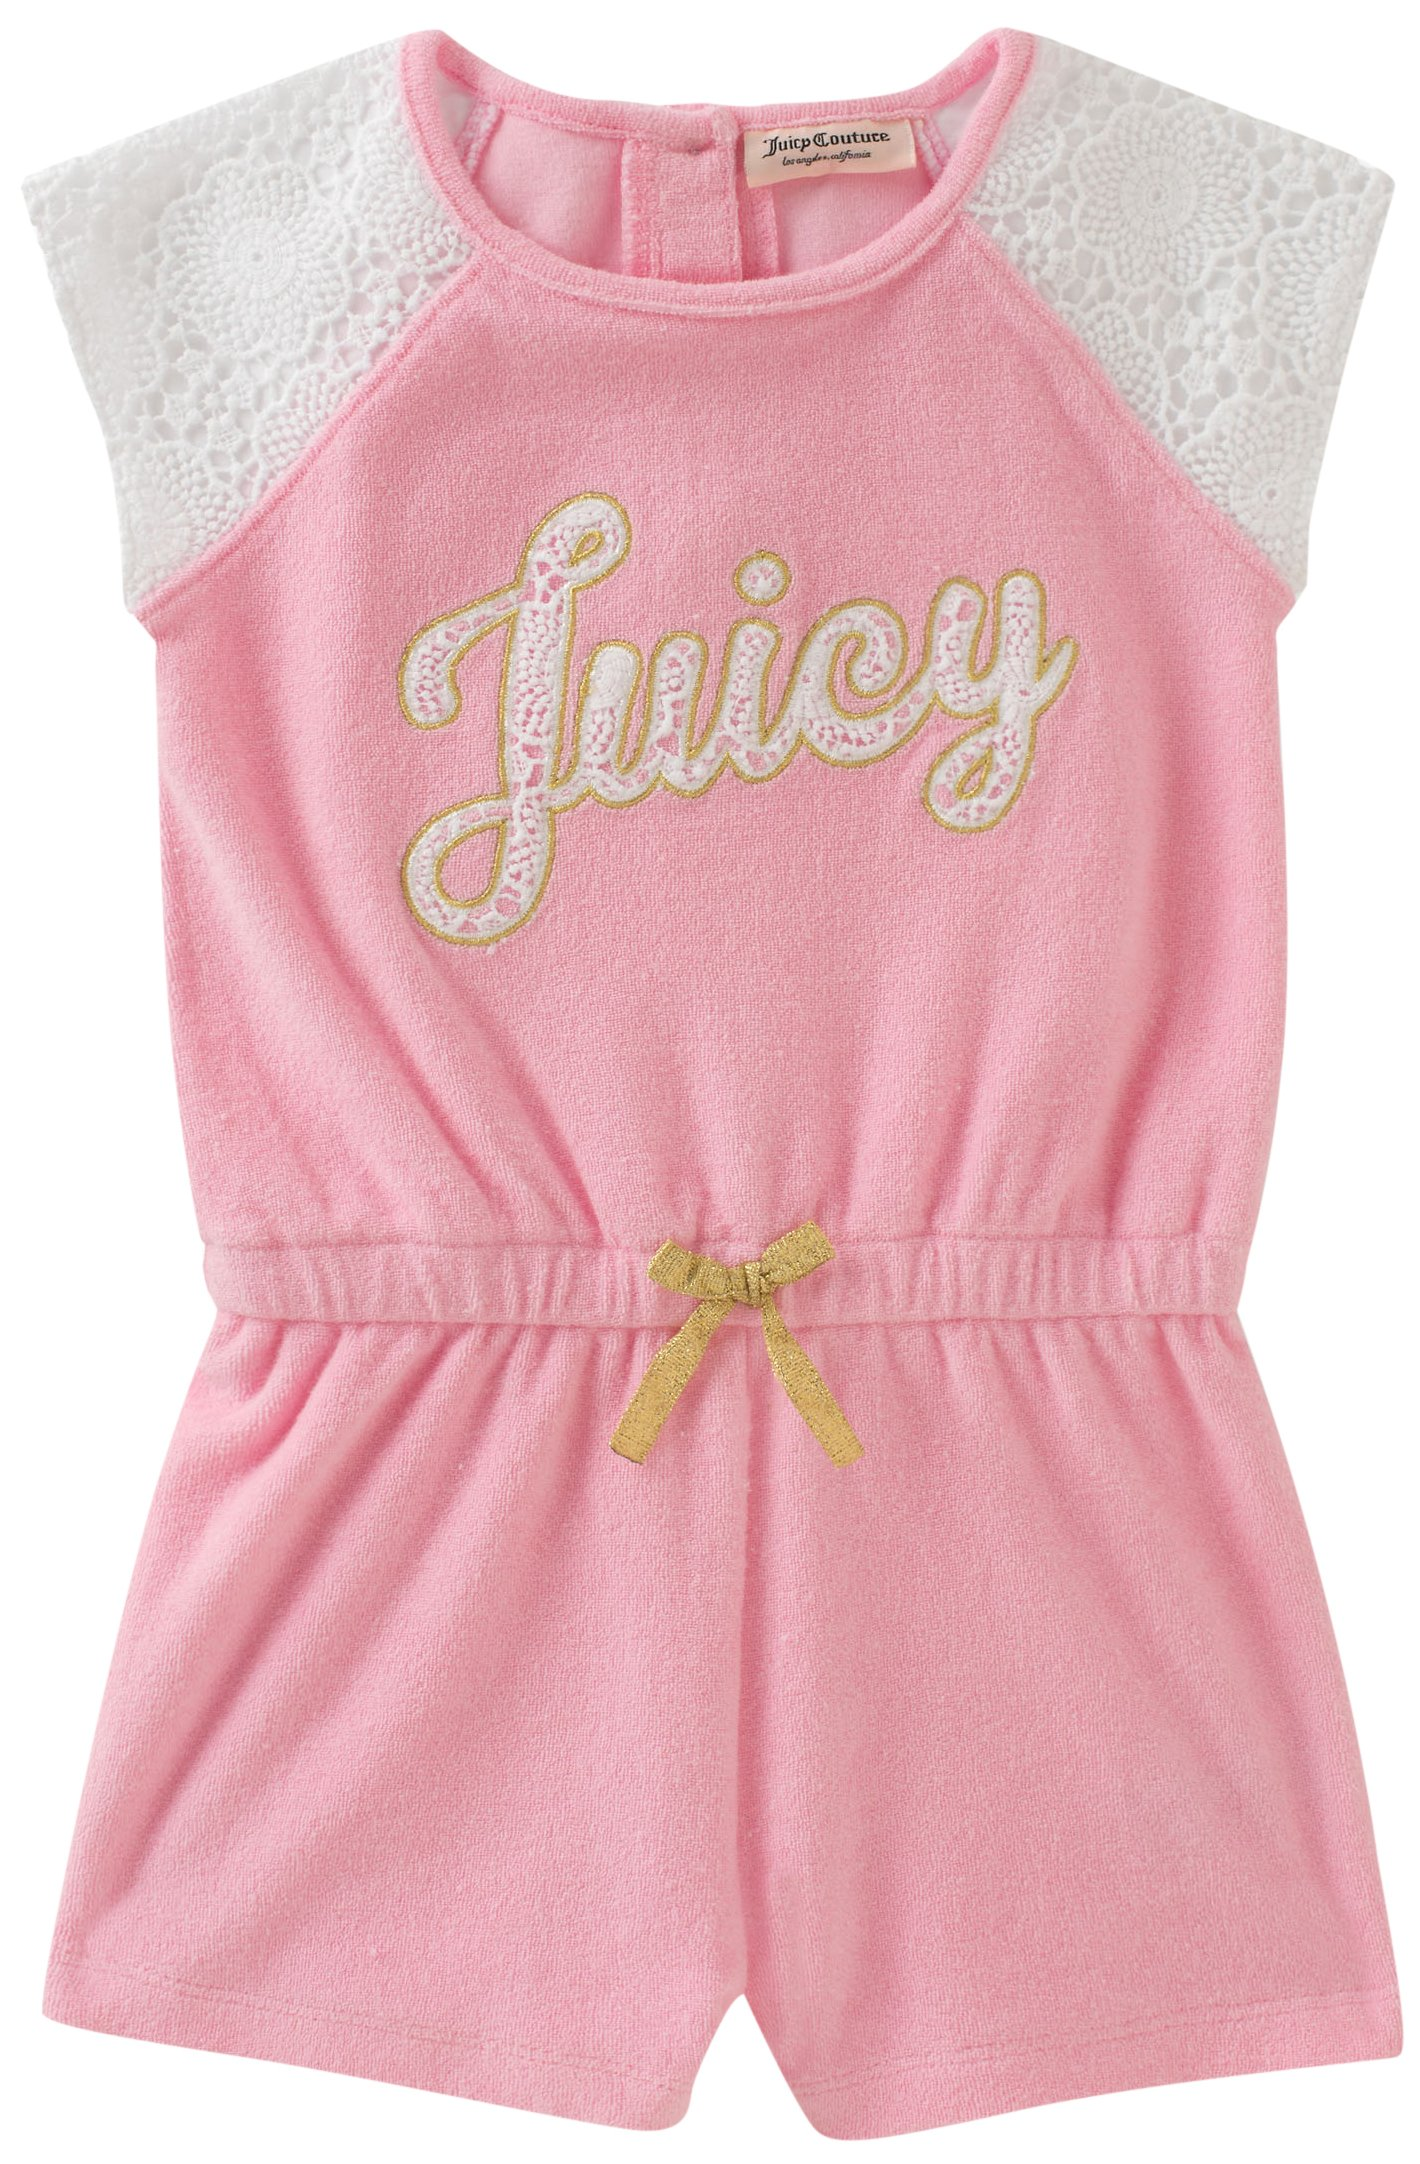 Juicy Couture Little Girls' Romper, Pink, 5